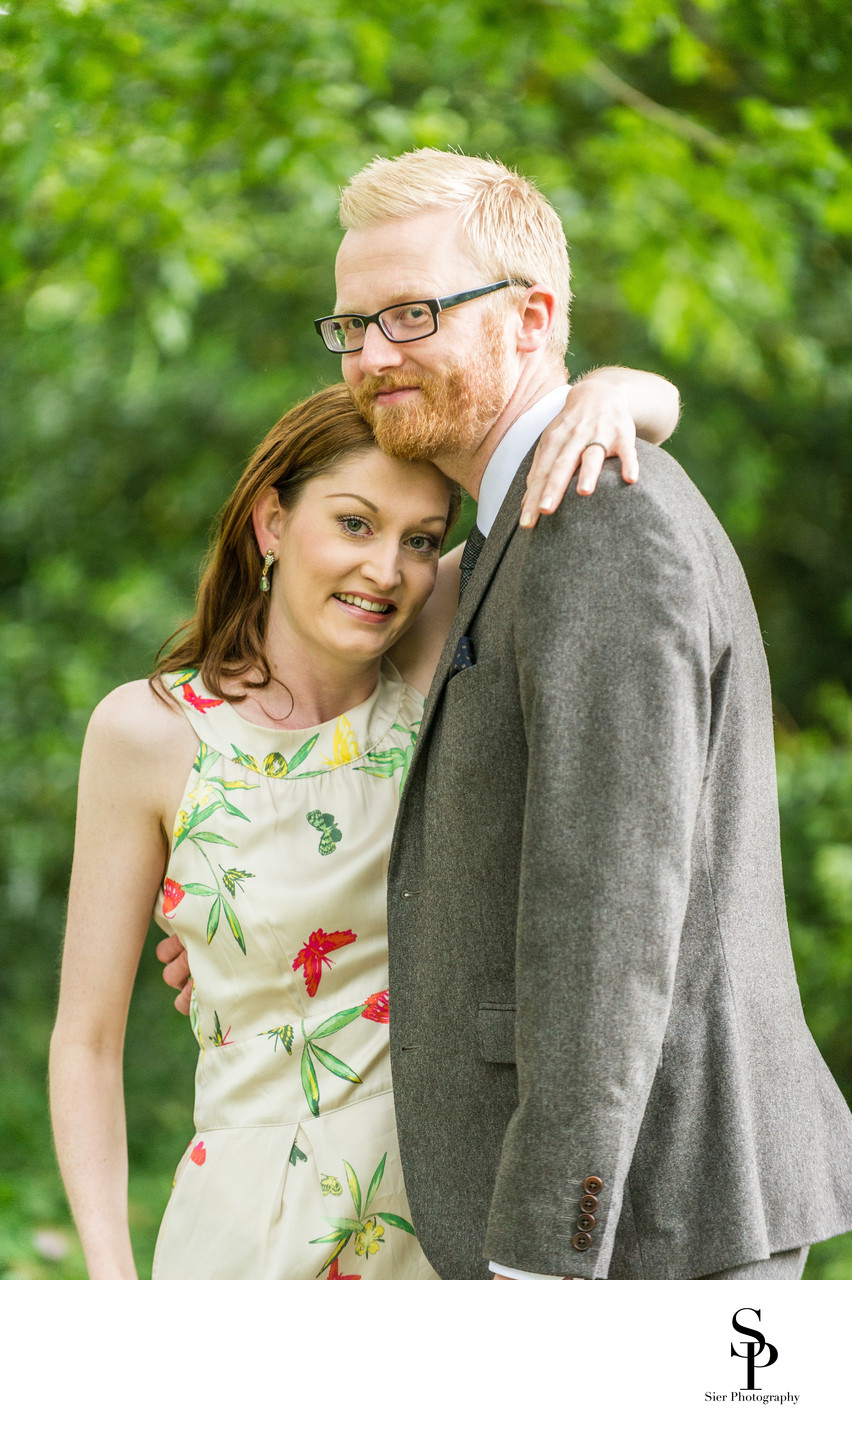 Botanical Gardens Engagement Photography